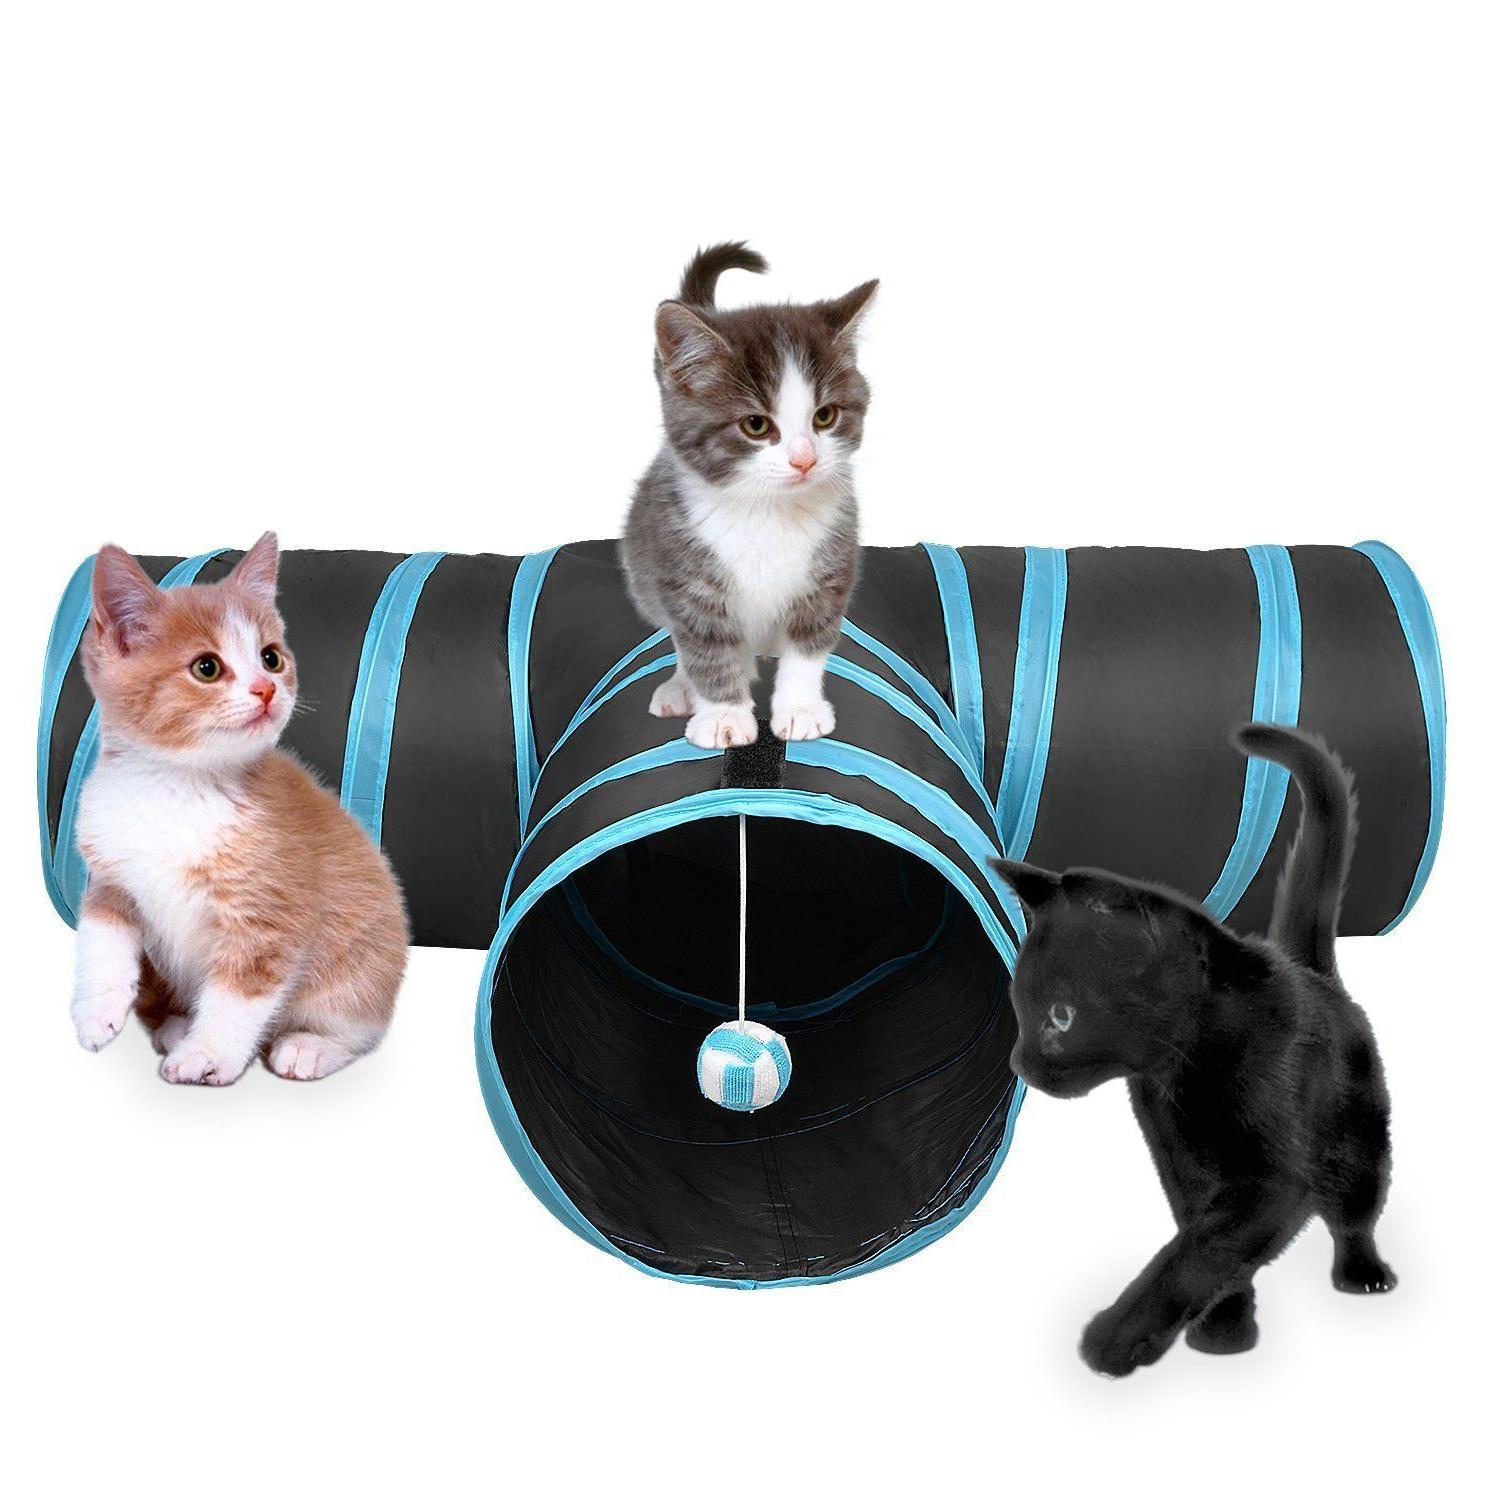 Creaker 3 way cat toy tunnel collapsible pet toys with ball